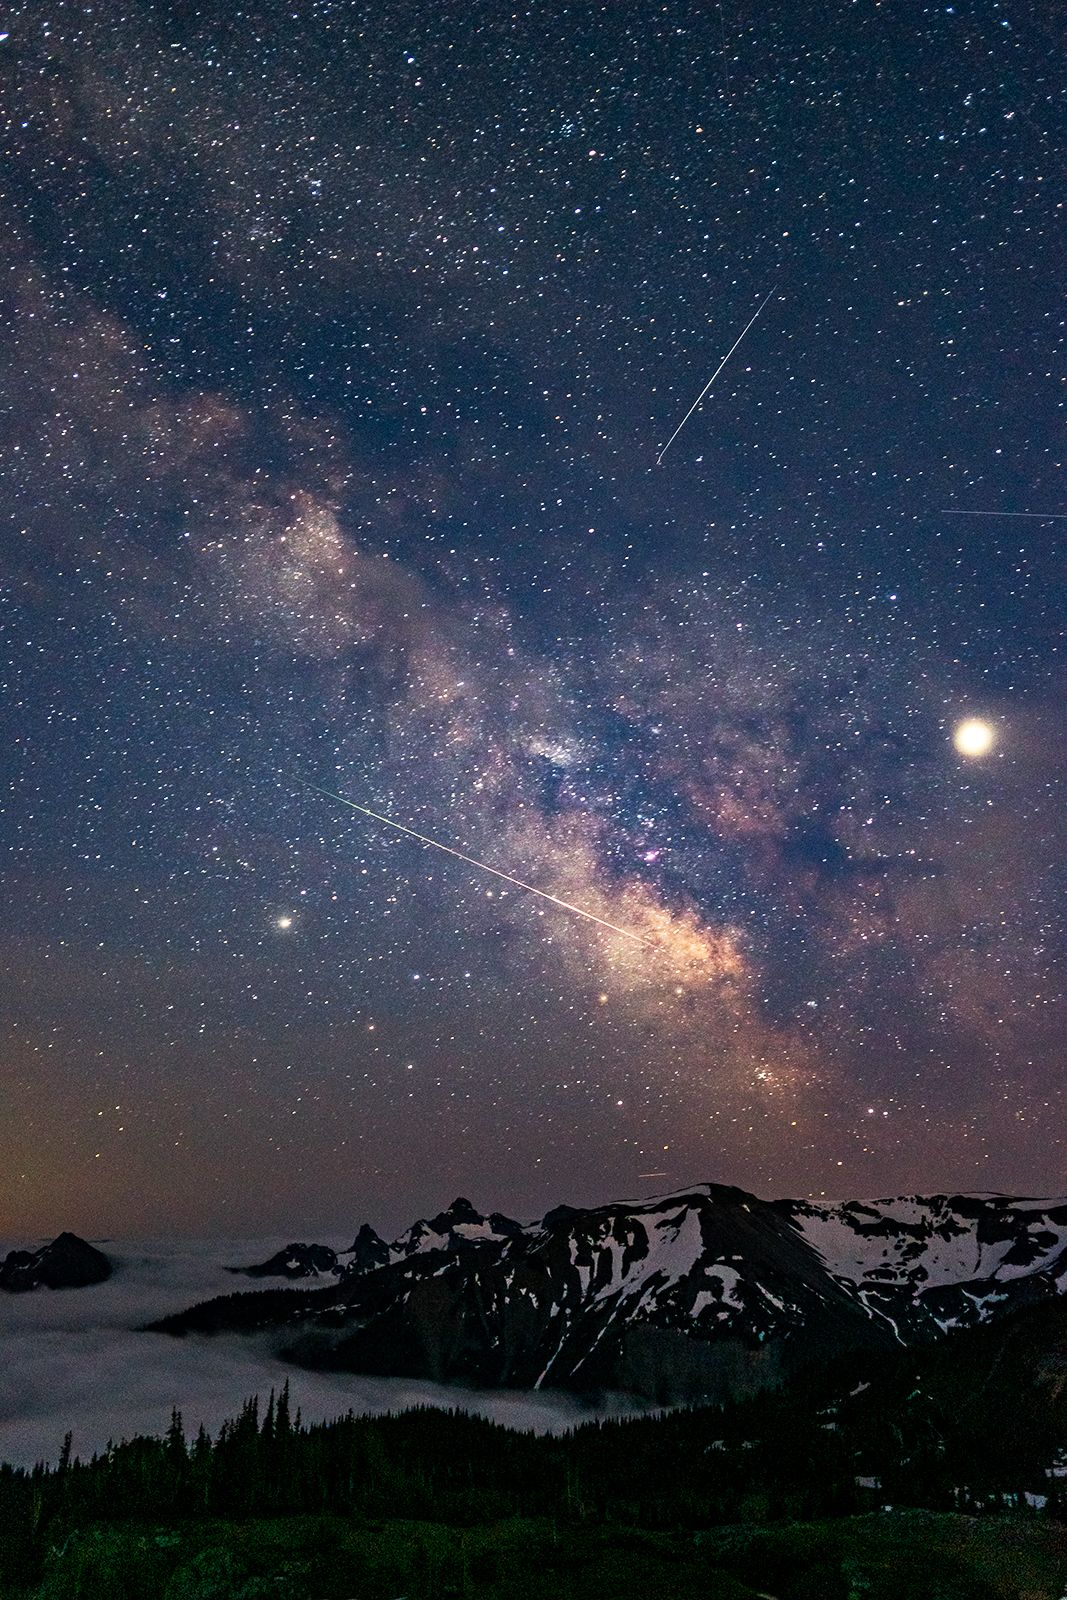 Milky Way Jupiter Saturn A Few Shooting Stars And The Cascade Mountains Last Night 1060x1600 Milky Way Images Milky Way Photography Milky Way